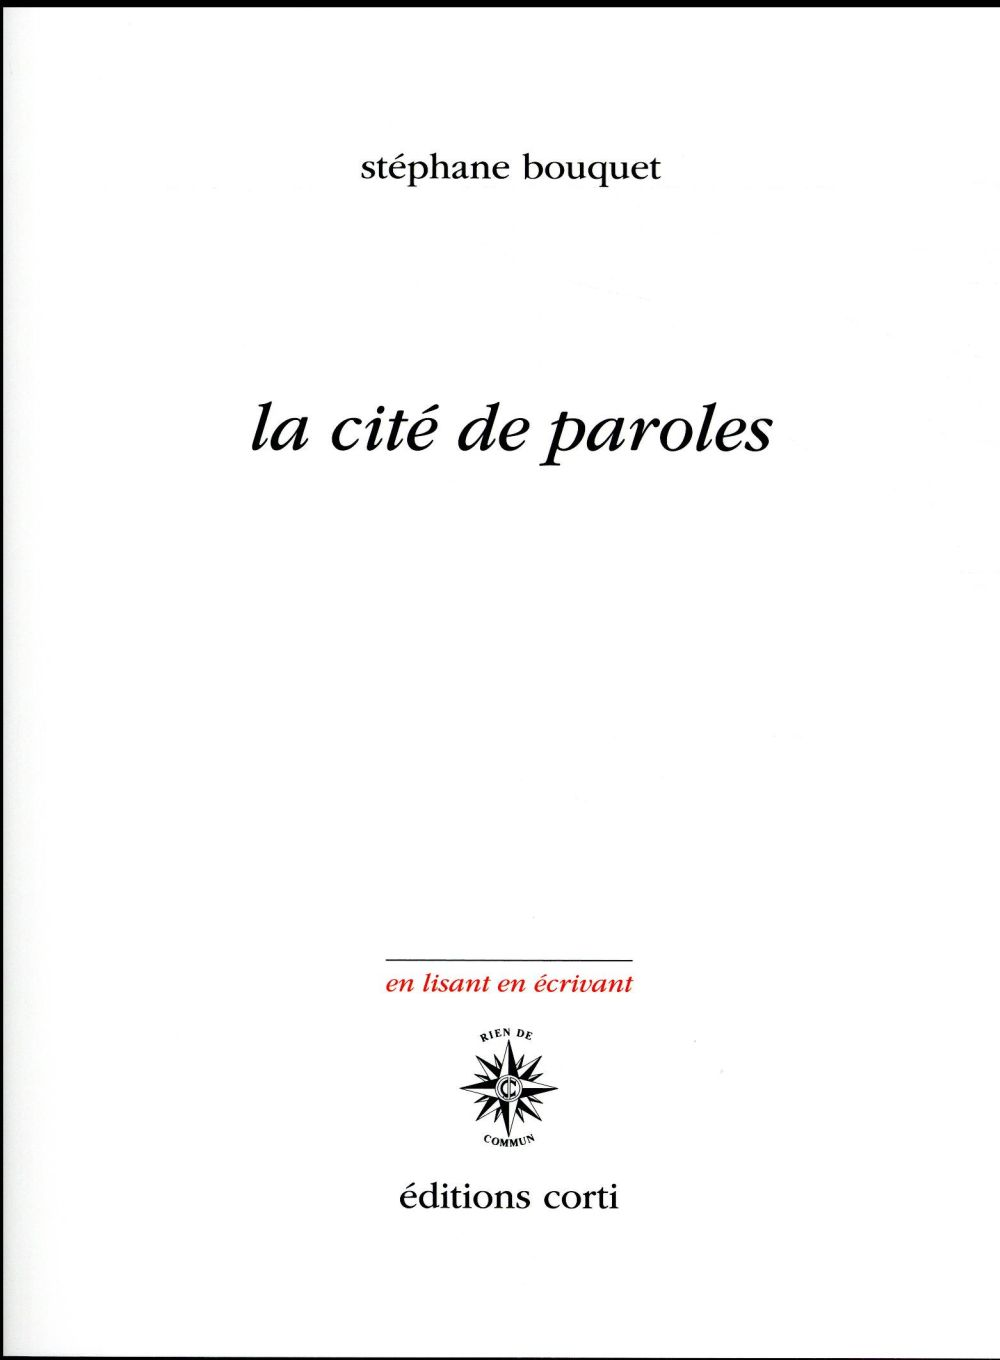 La cité de paroles